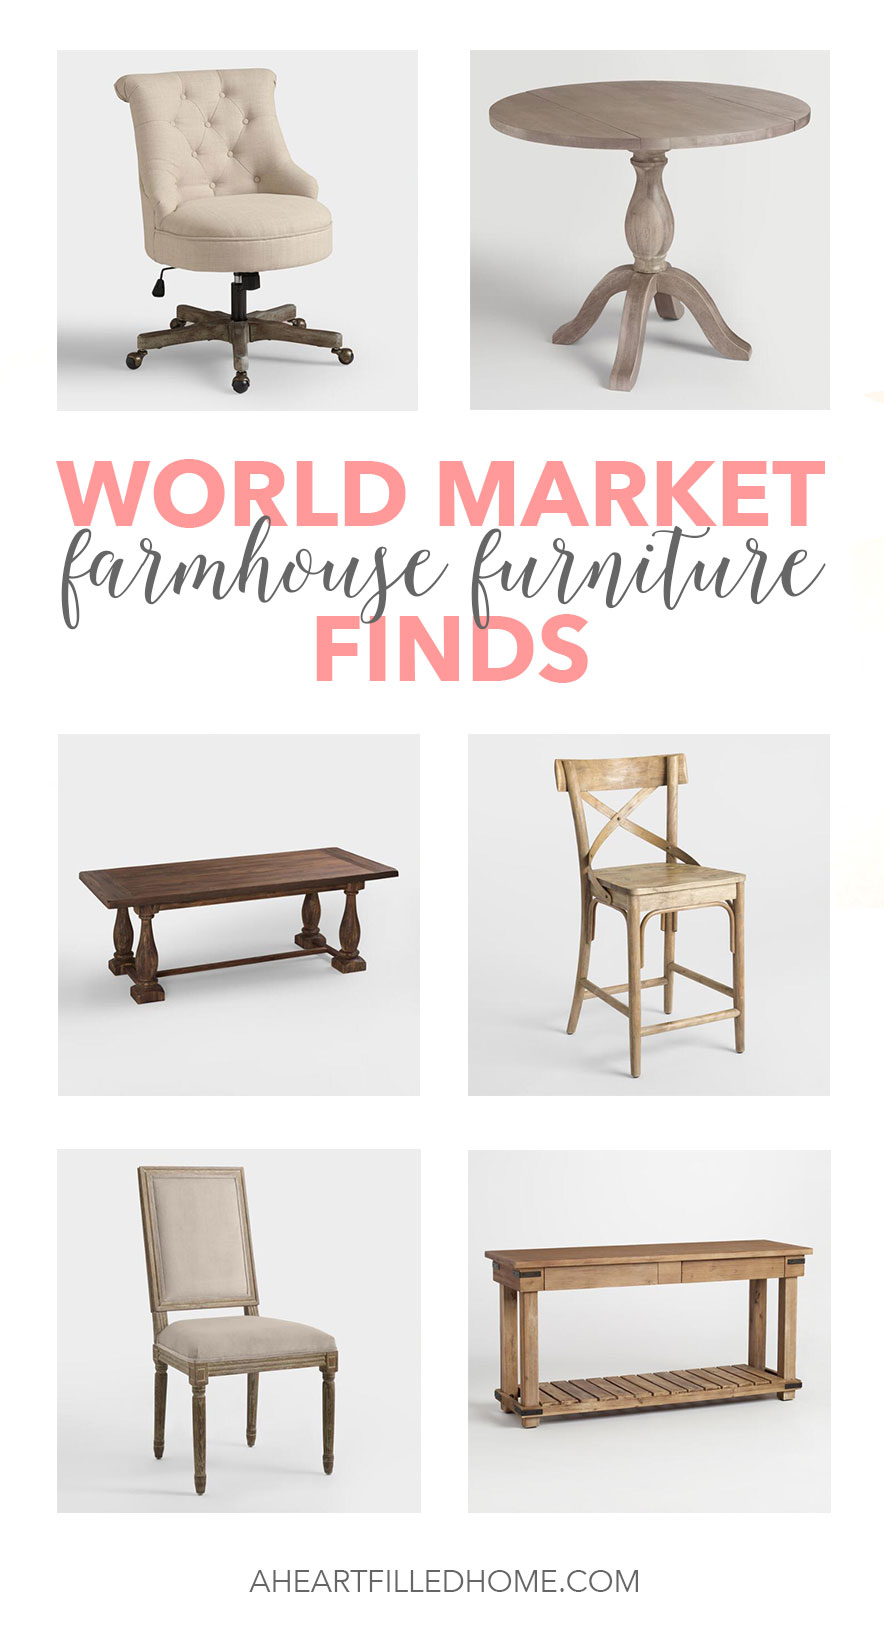 These are some amazing farmhouse furniture finds from World Market! From aheartfilledhome.com